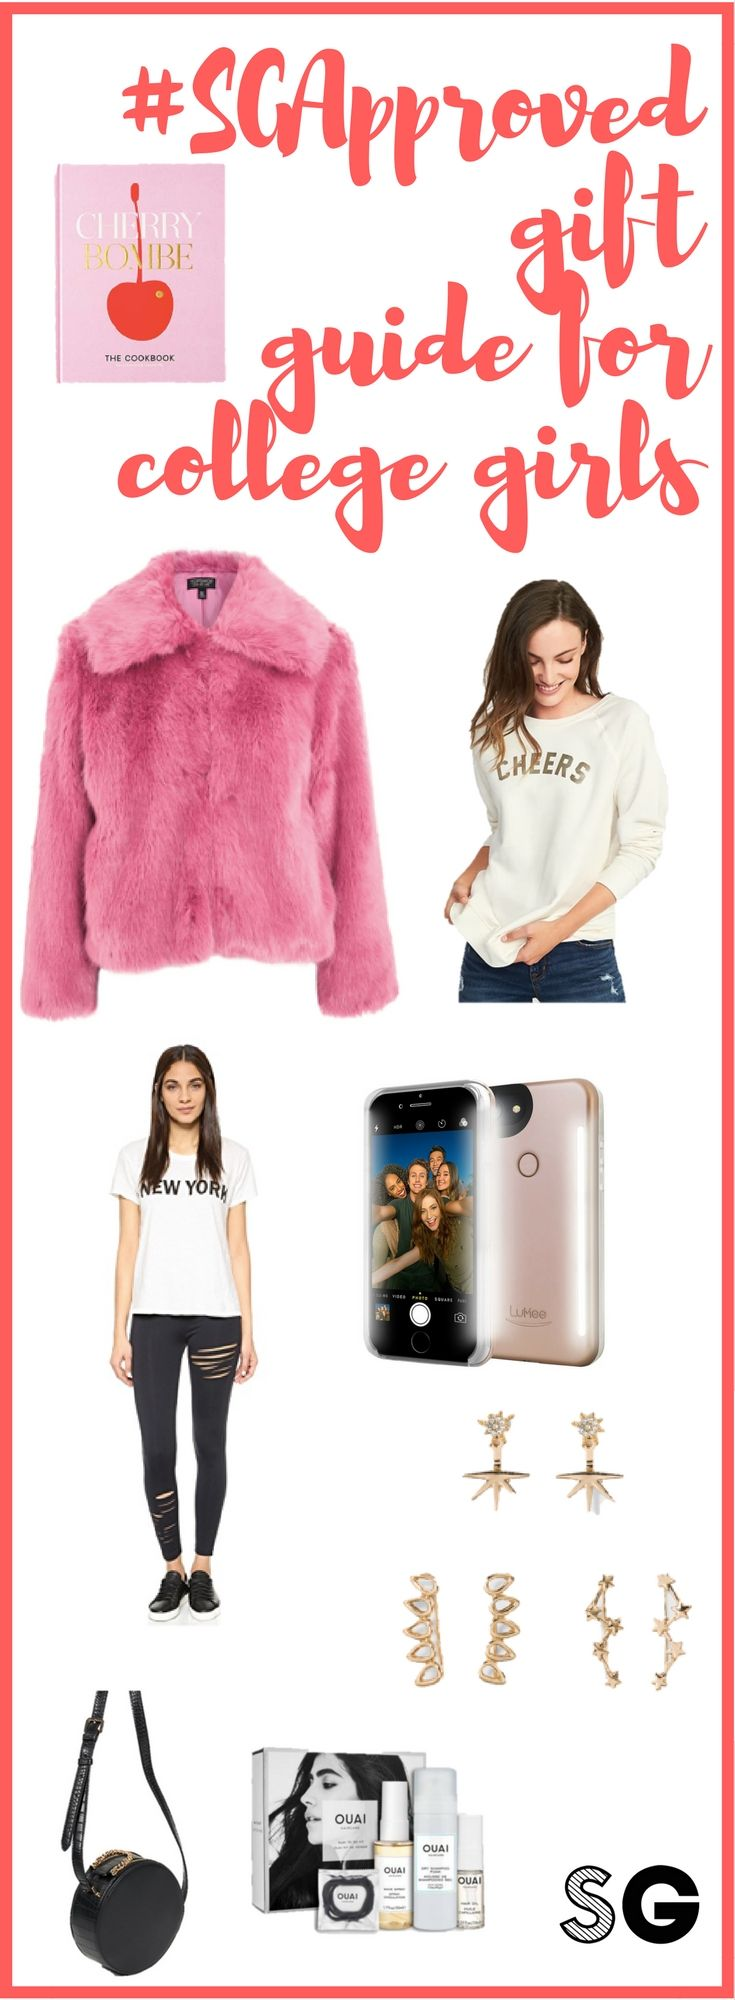 Cool Gift Ideas for College Girls | Girlfriend christmas gifts ...